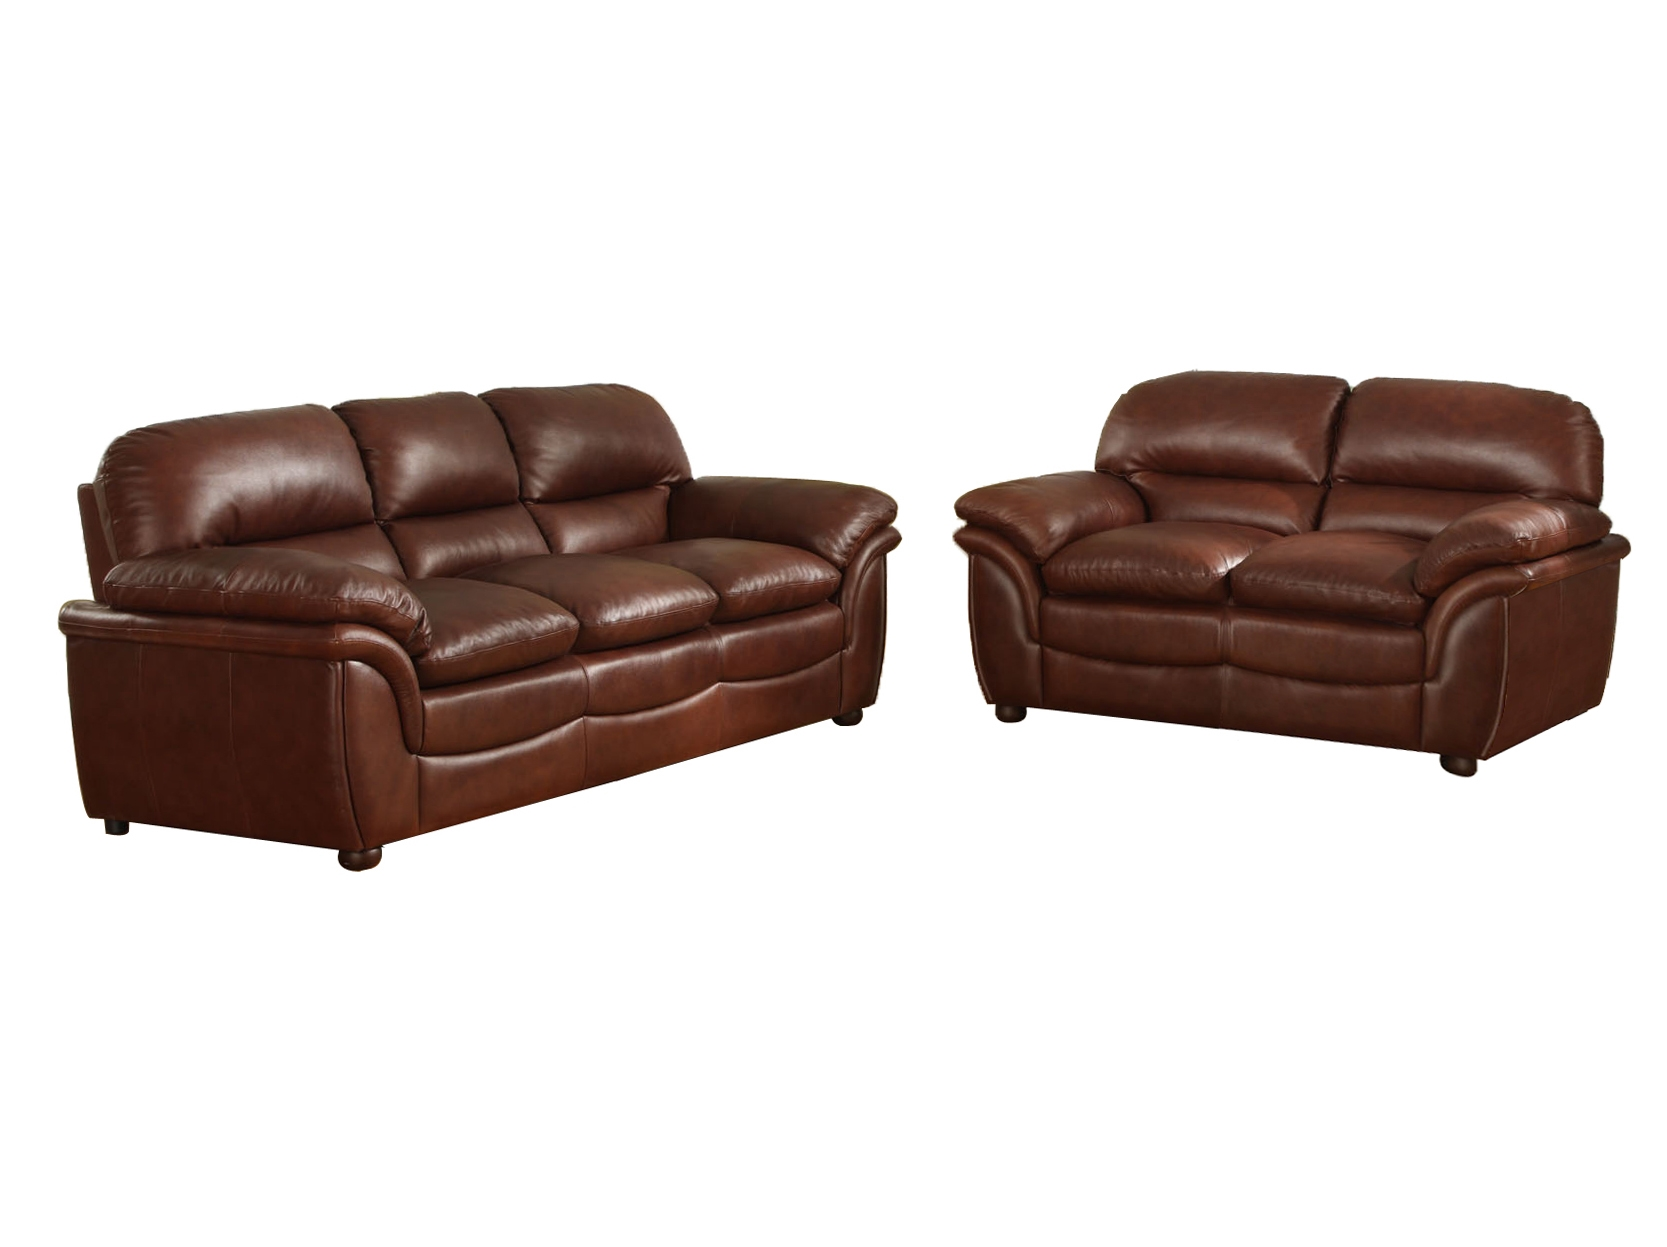 Baxton Studio Redding Cognac Brown Leather Modern Sofa Set | Living ...